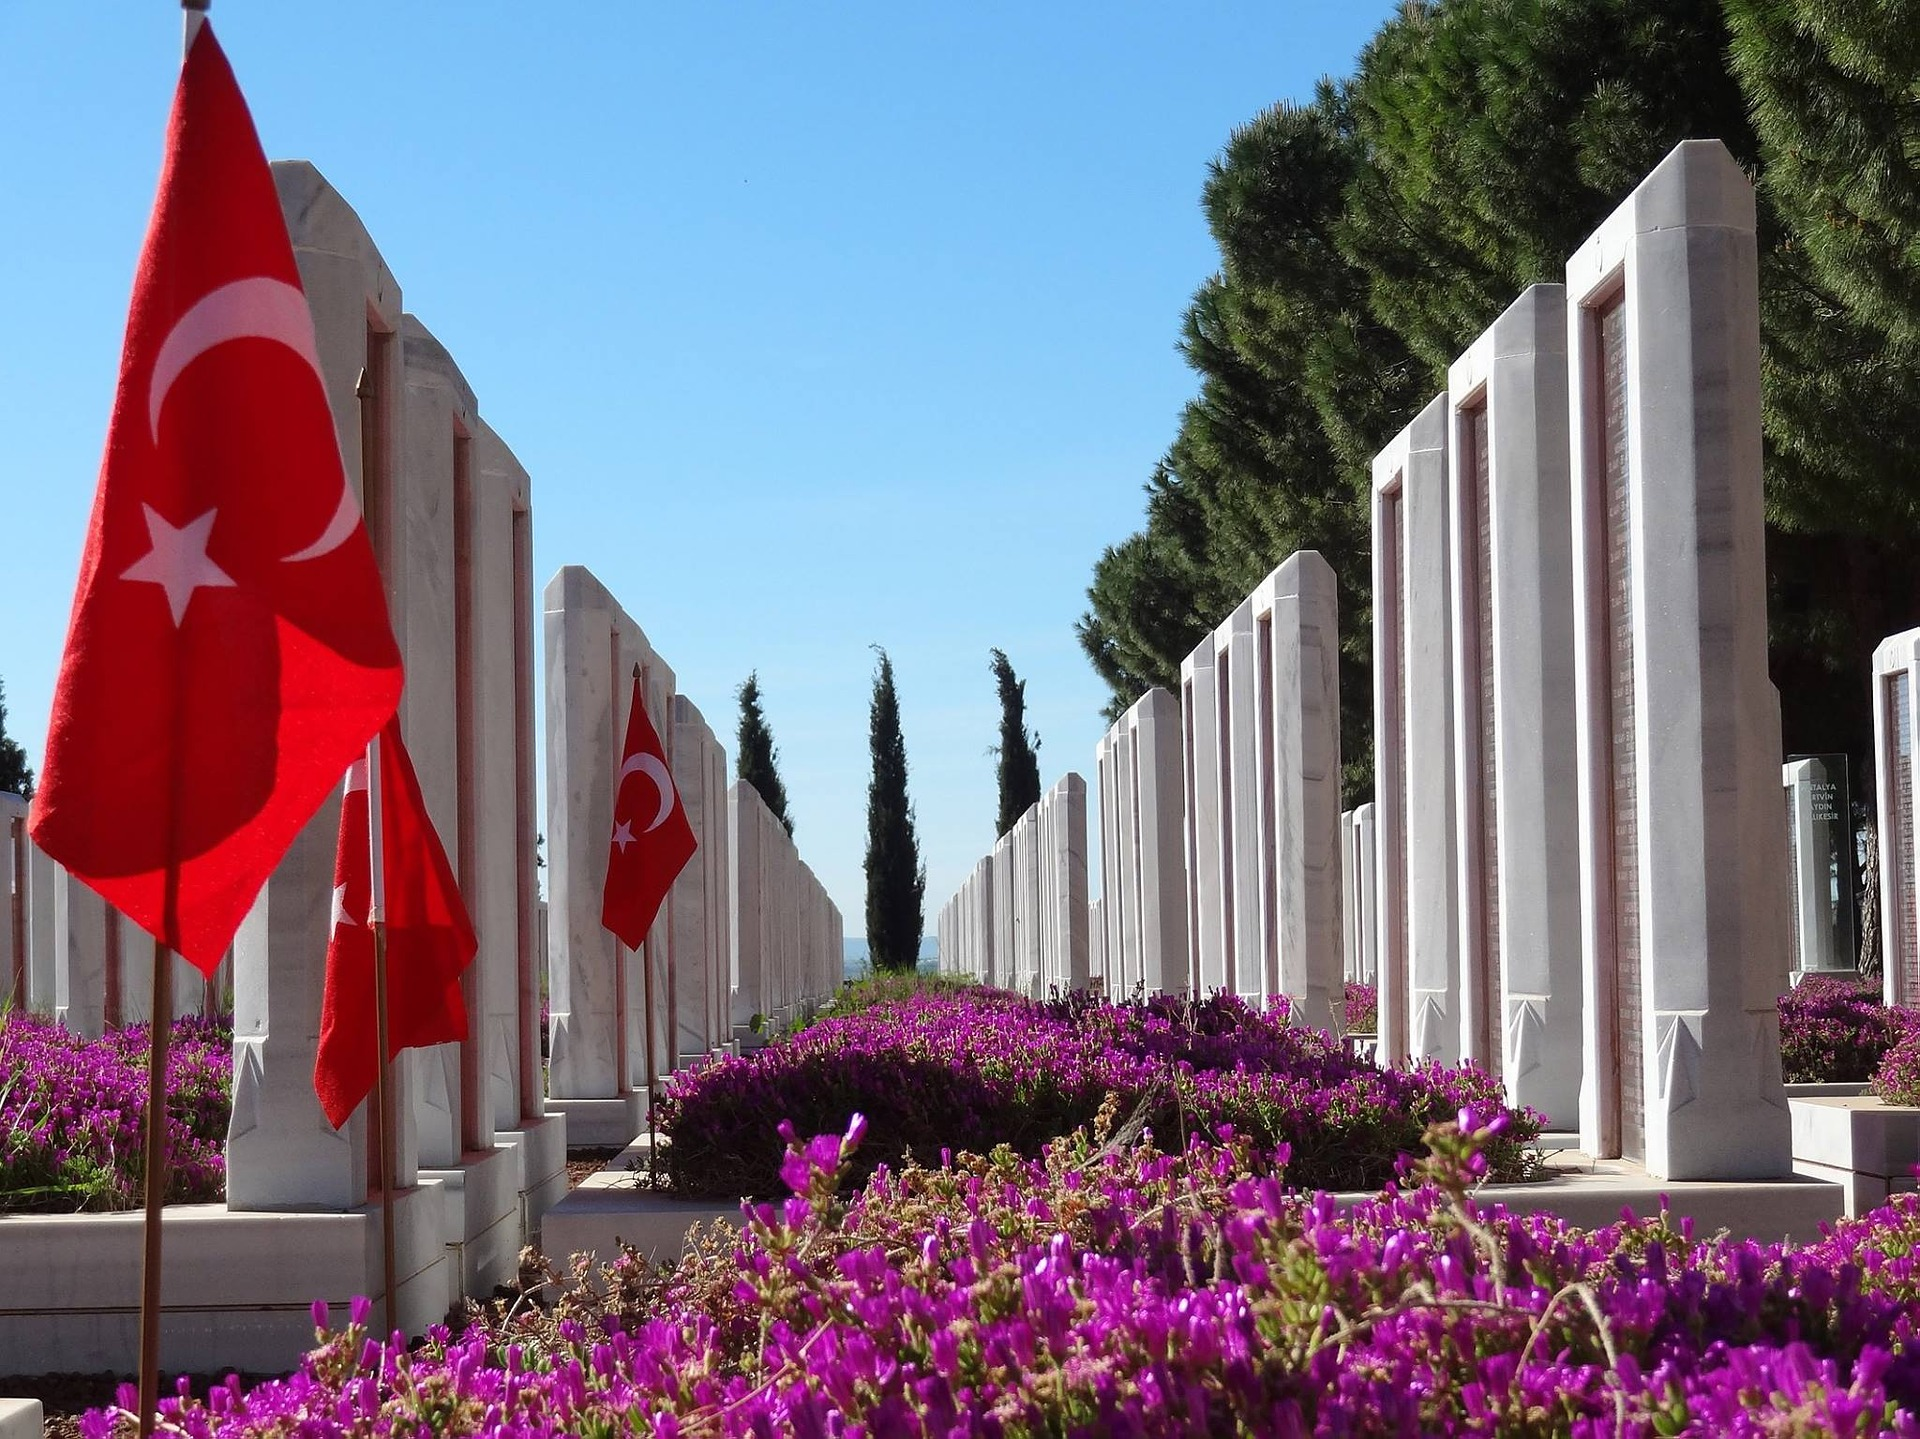 A flag of Turkey on a stand outside surrounded by pink flowers in a courtyard